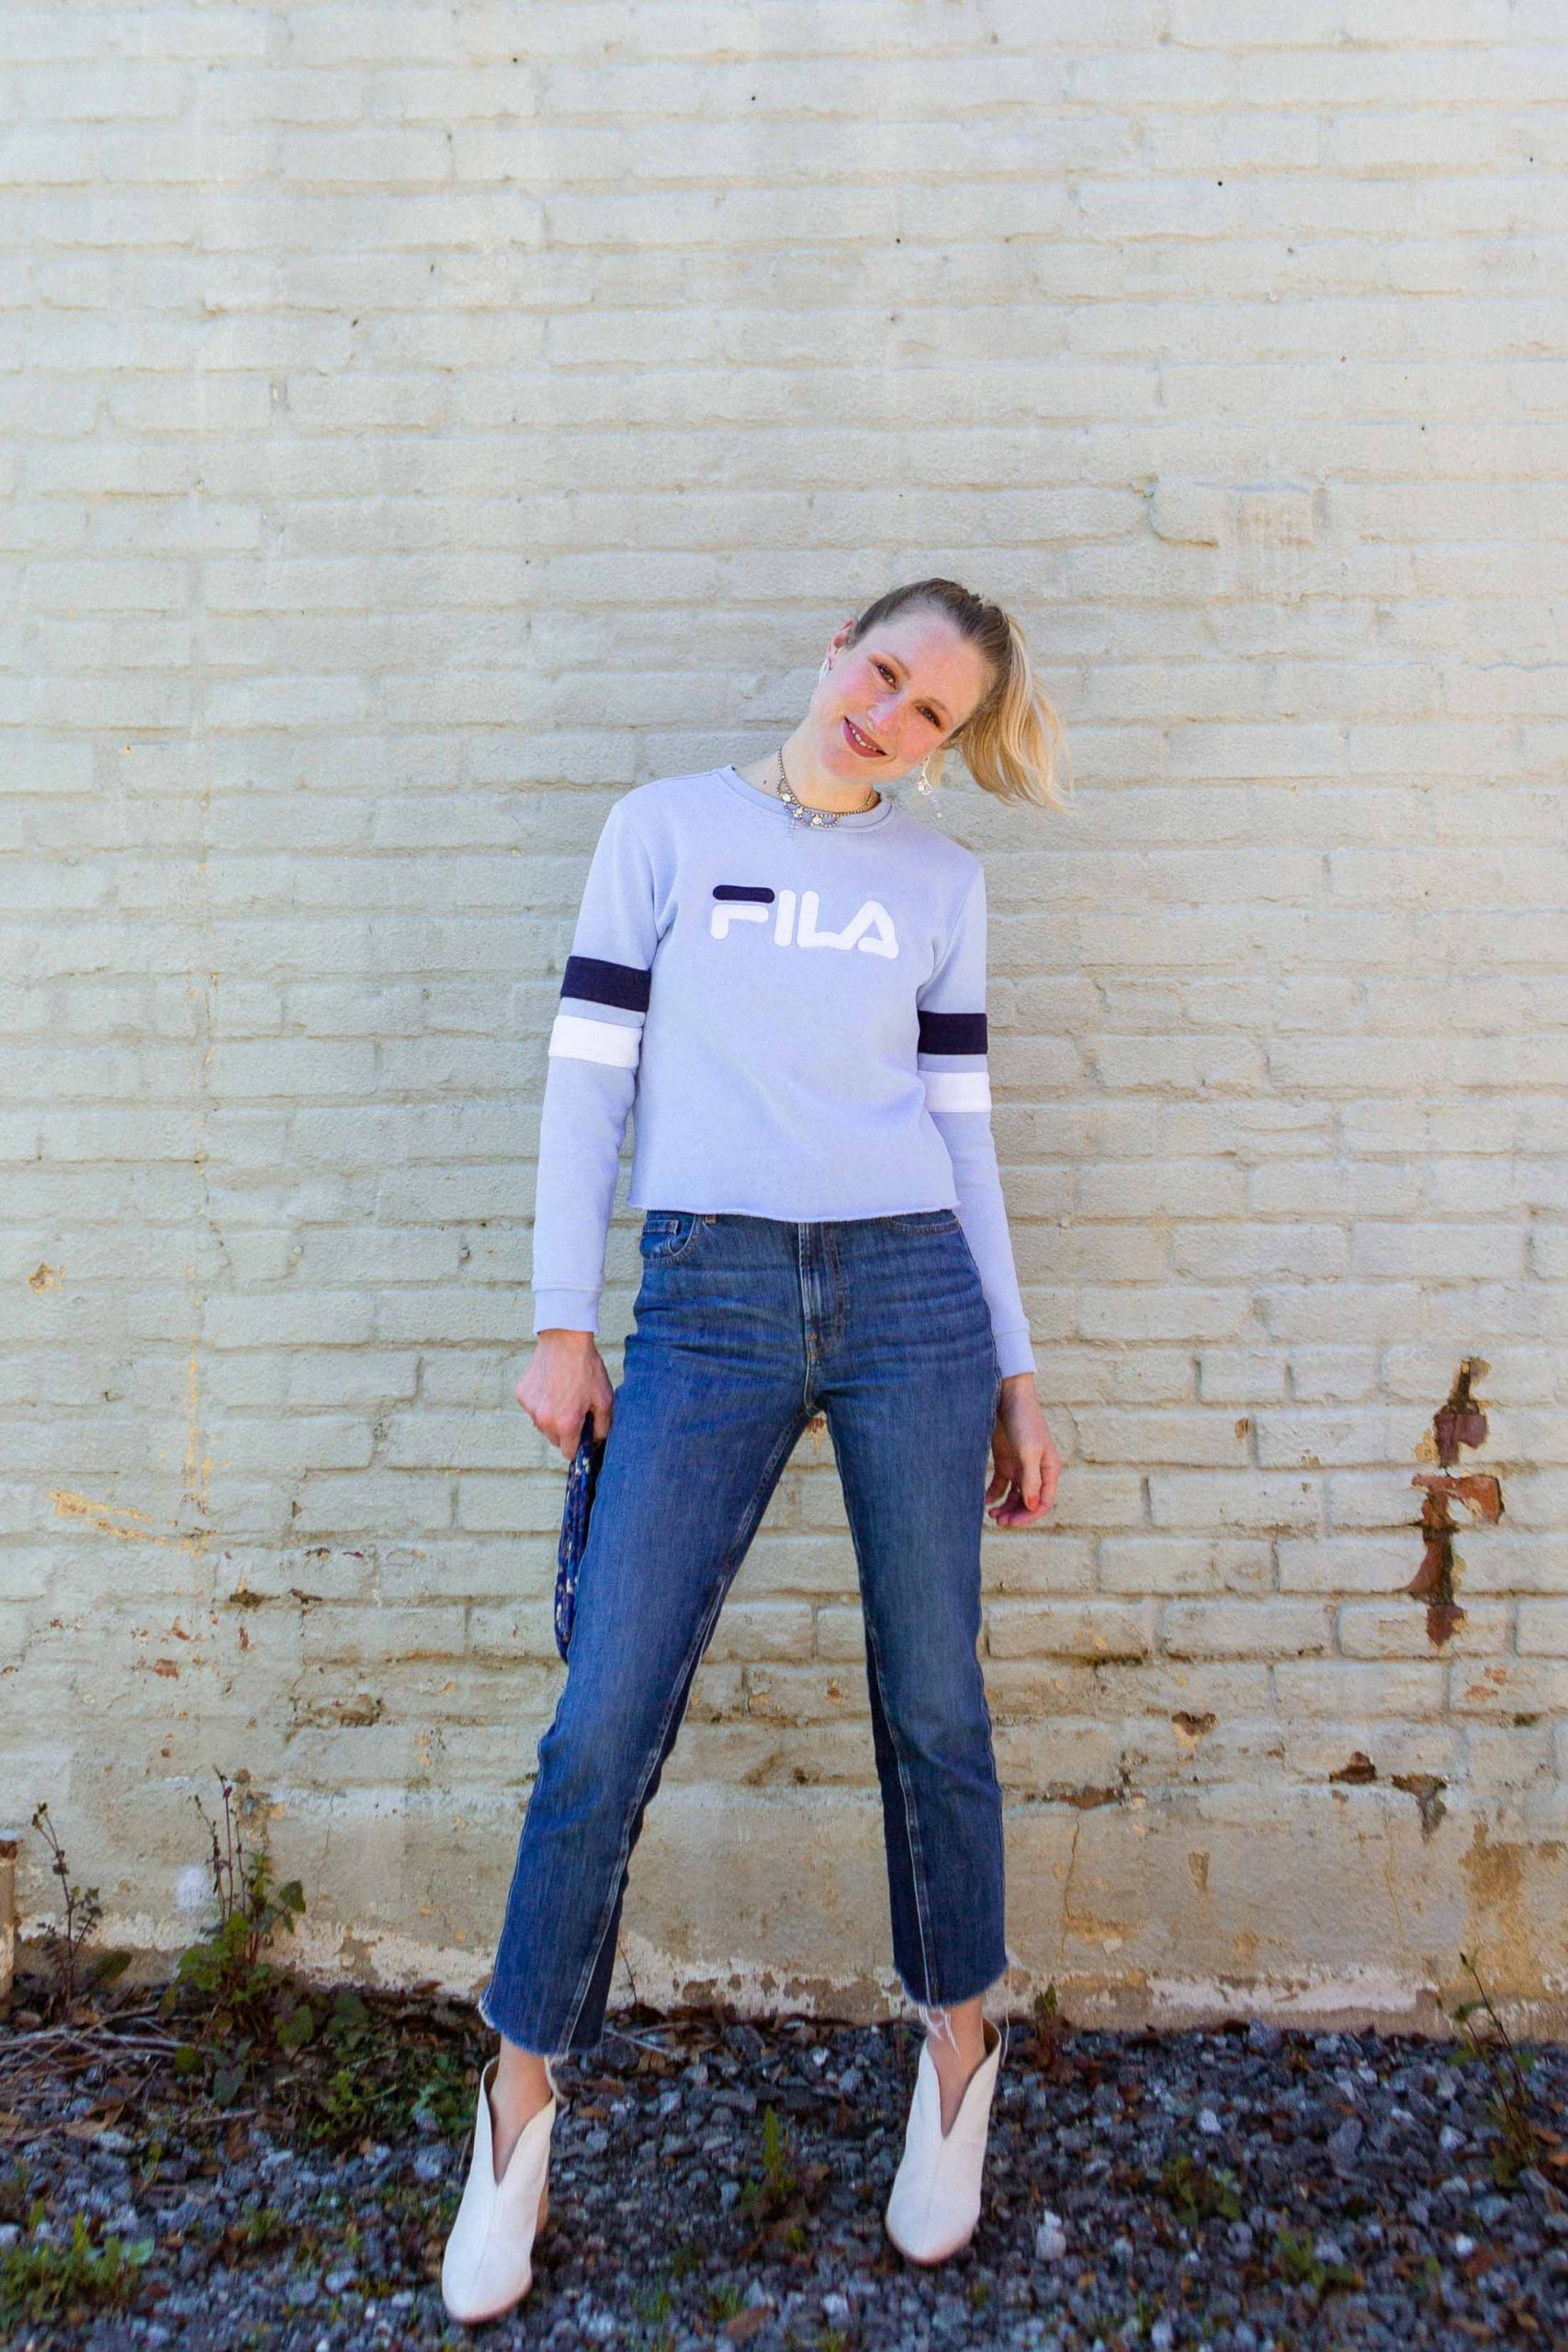 That FILA sweatshirt from Costco? It needed The Scissor Life. Cropped sweatshirts are life-changing. A bold statement, we know. Get ya'self one.